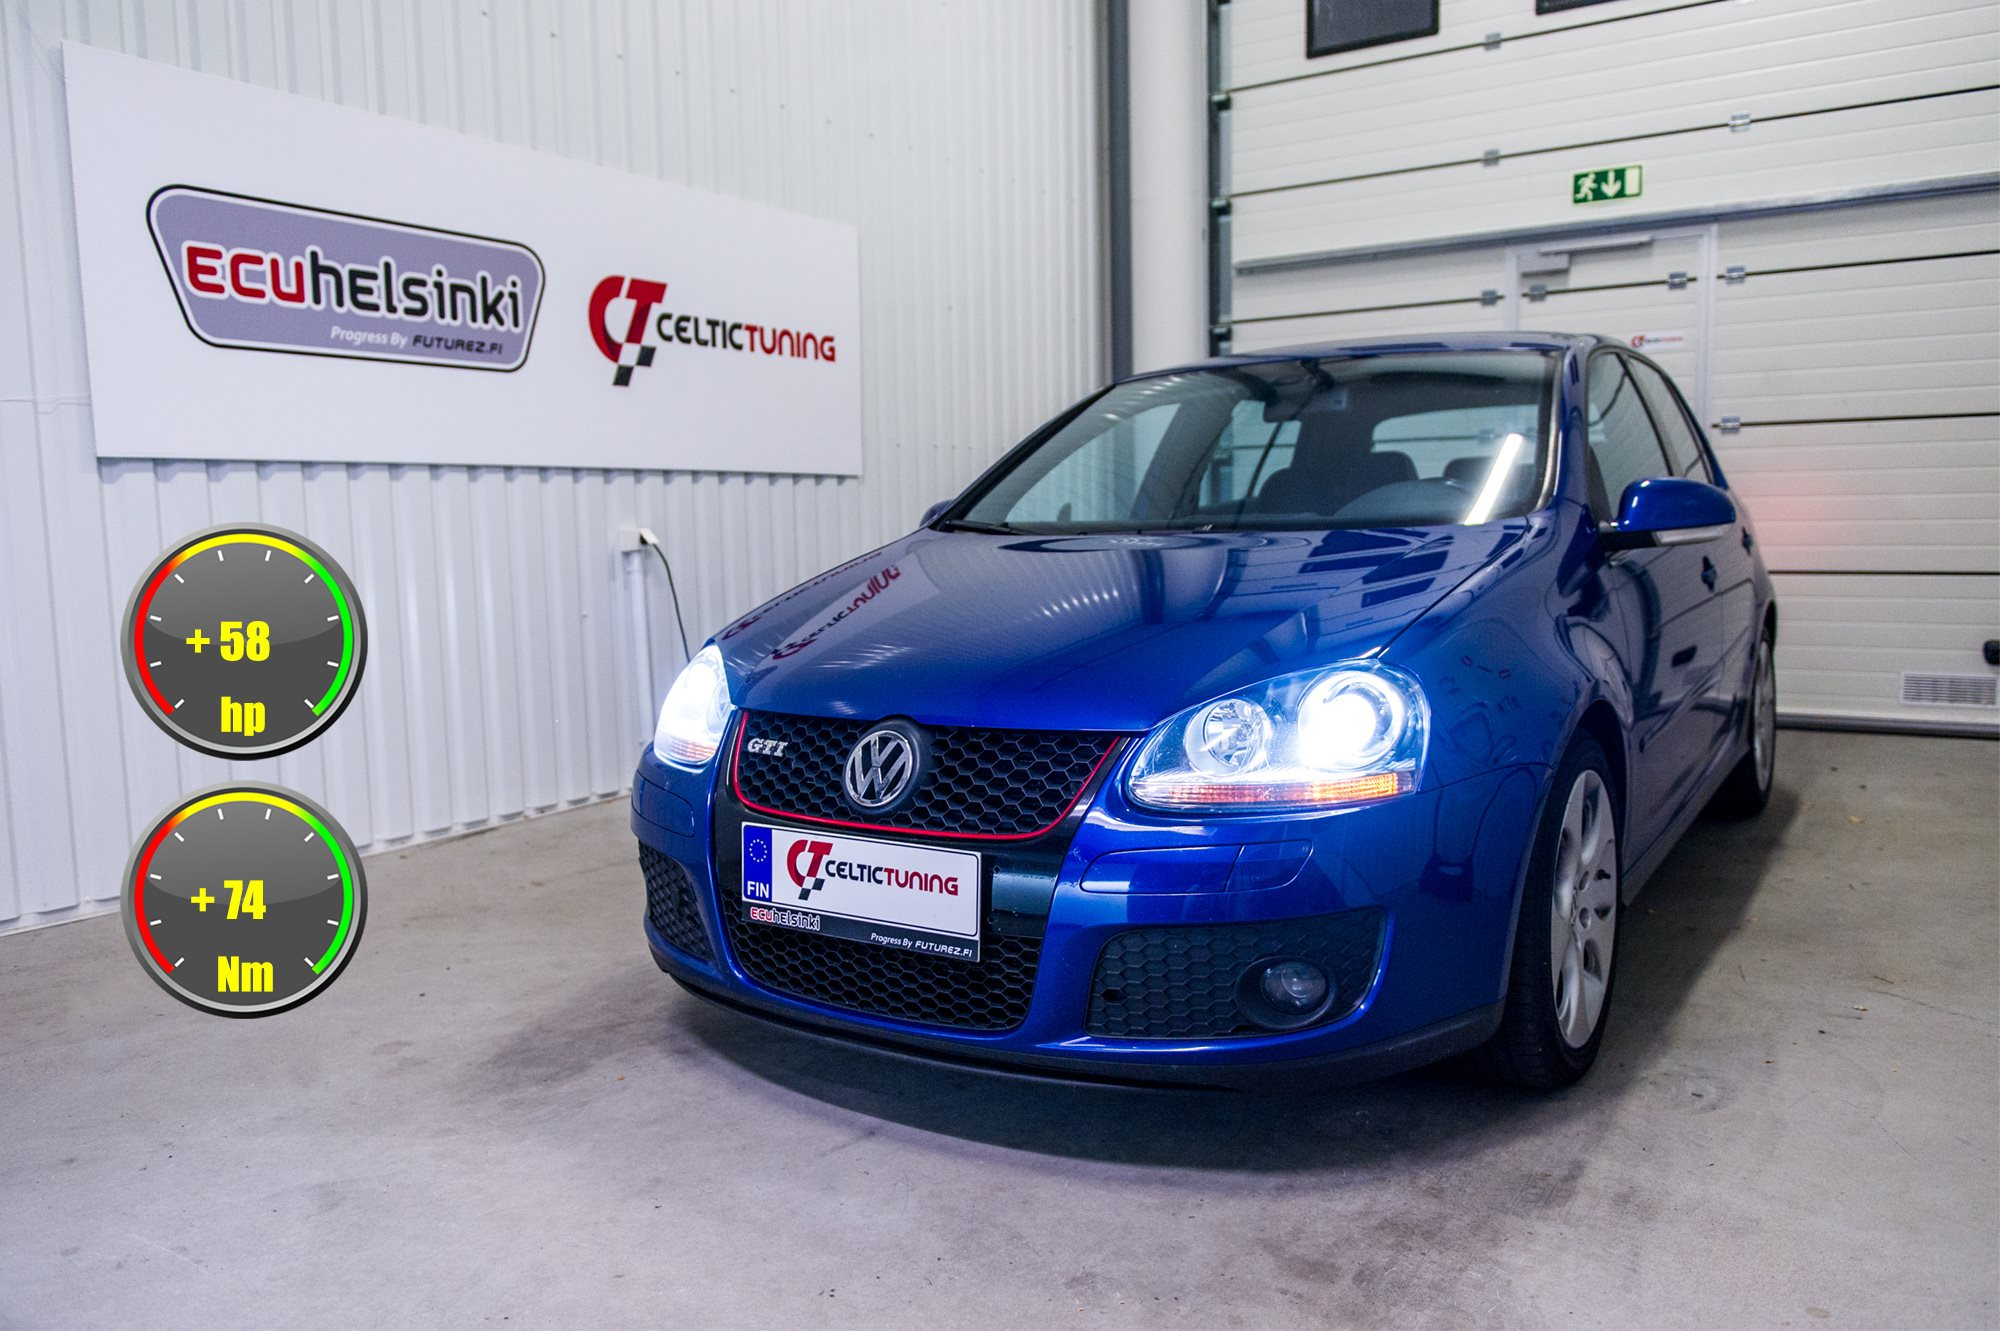 Golf GTI MK5 lastutus celtic tuning